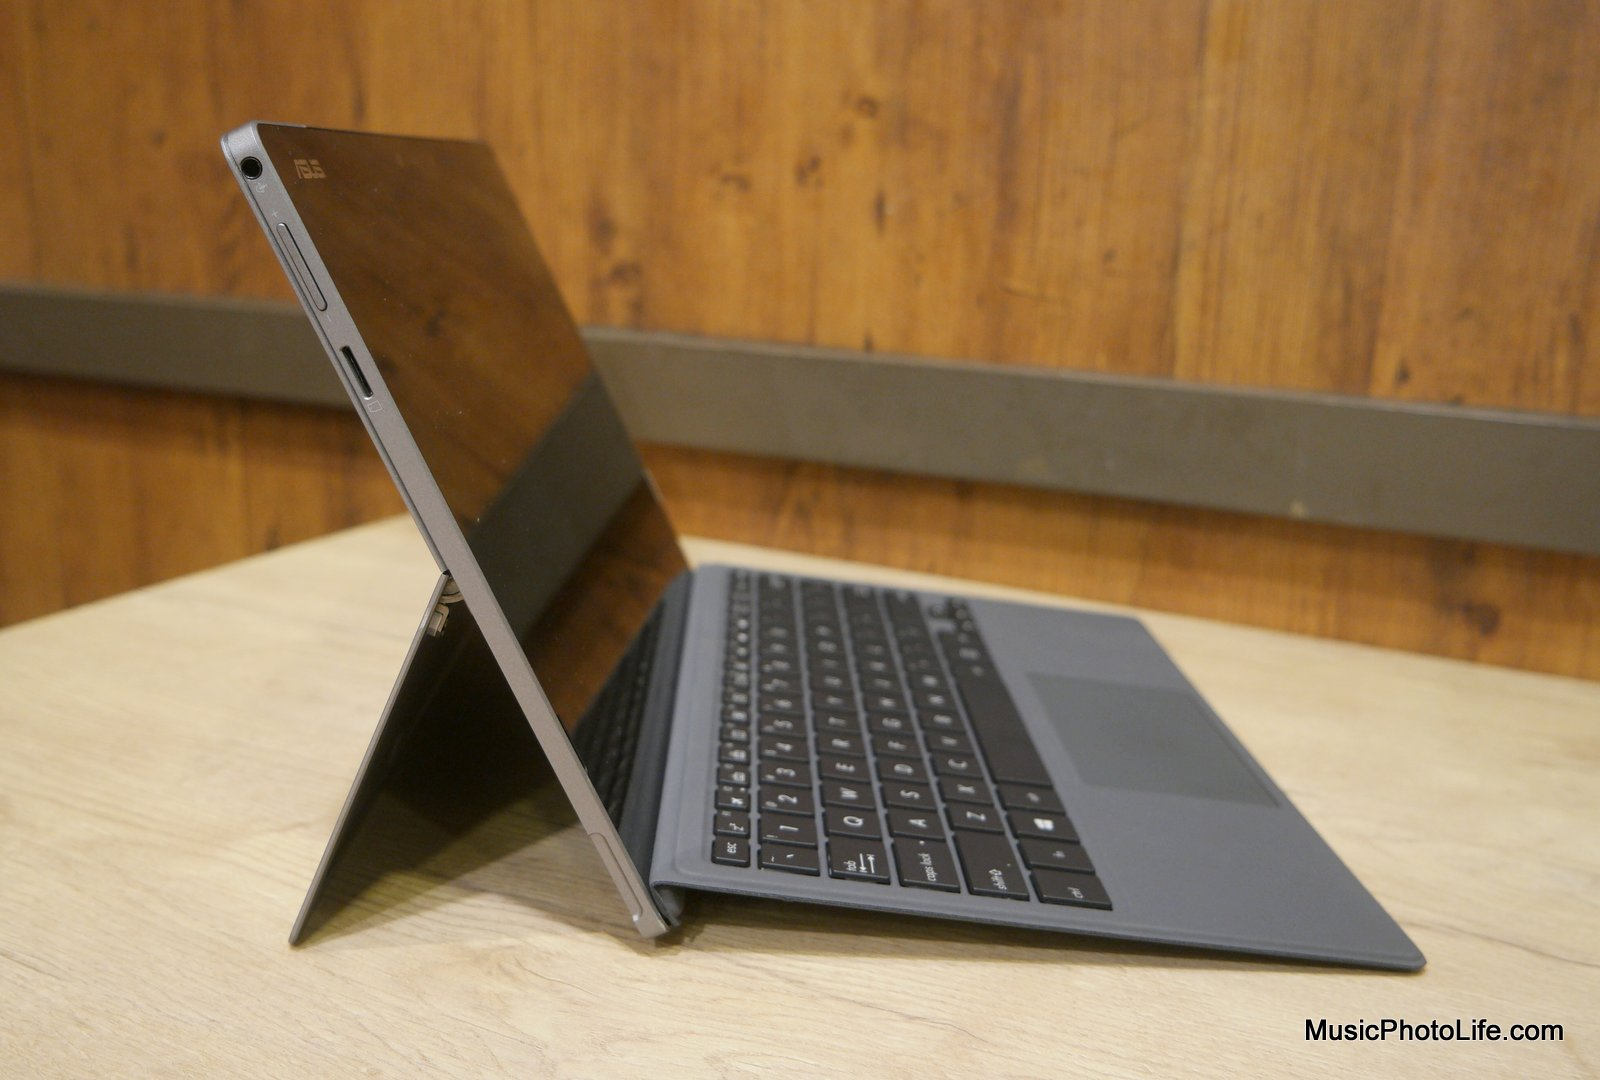 ASUS Transformer 3 Pro review by Singapore gadget reviewer Chester Tan